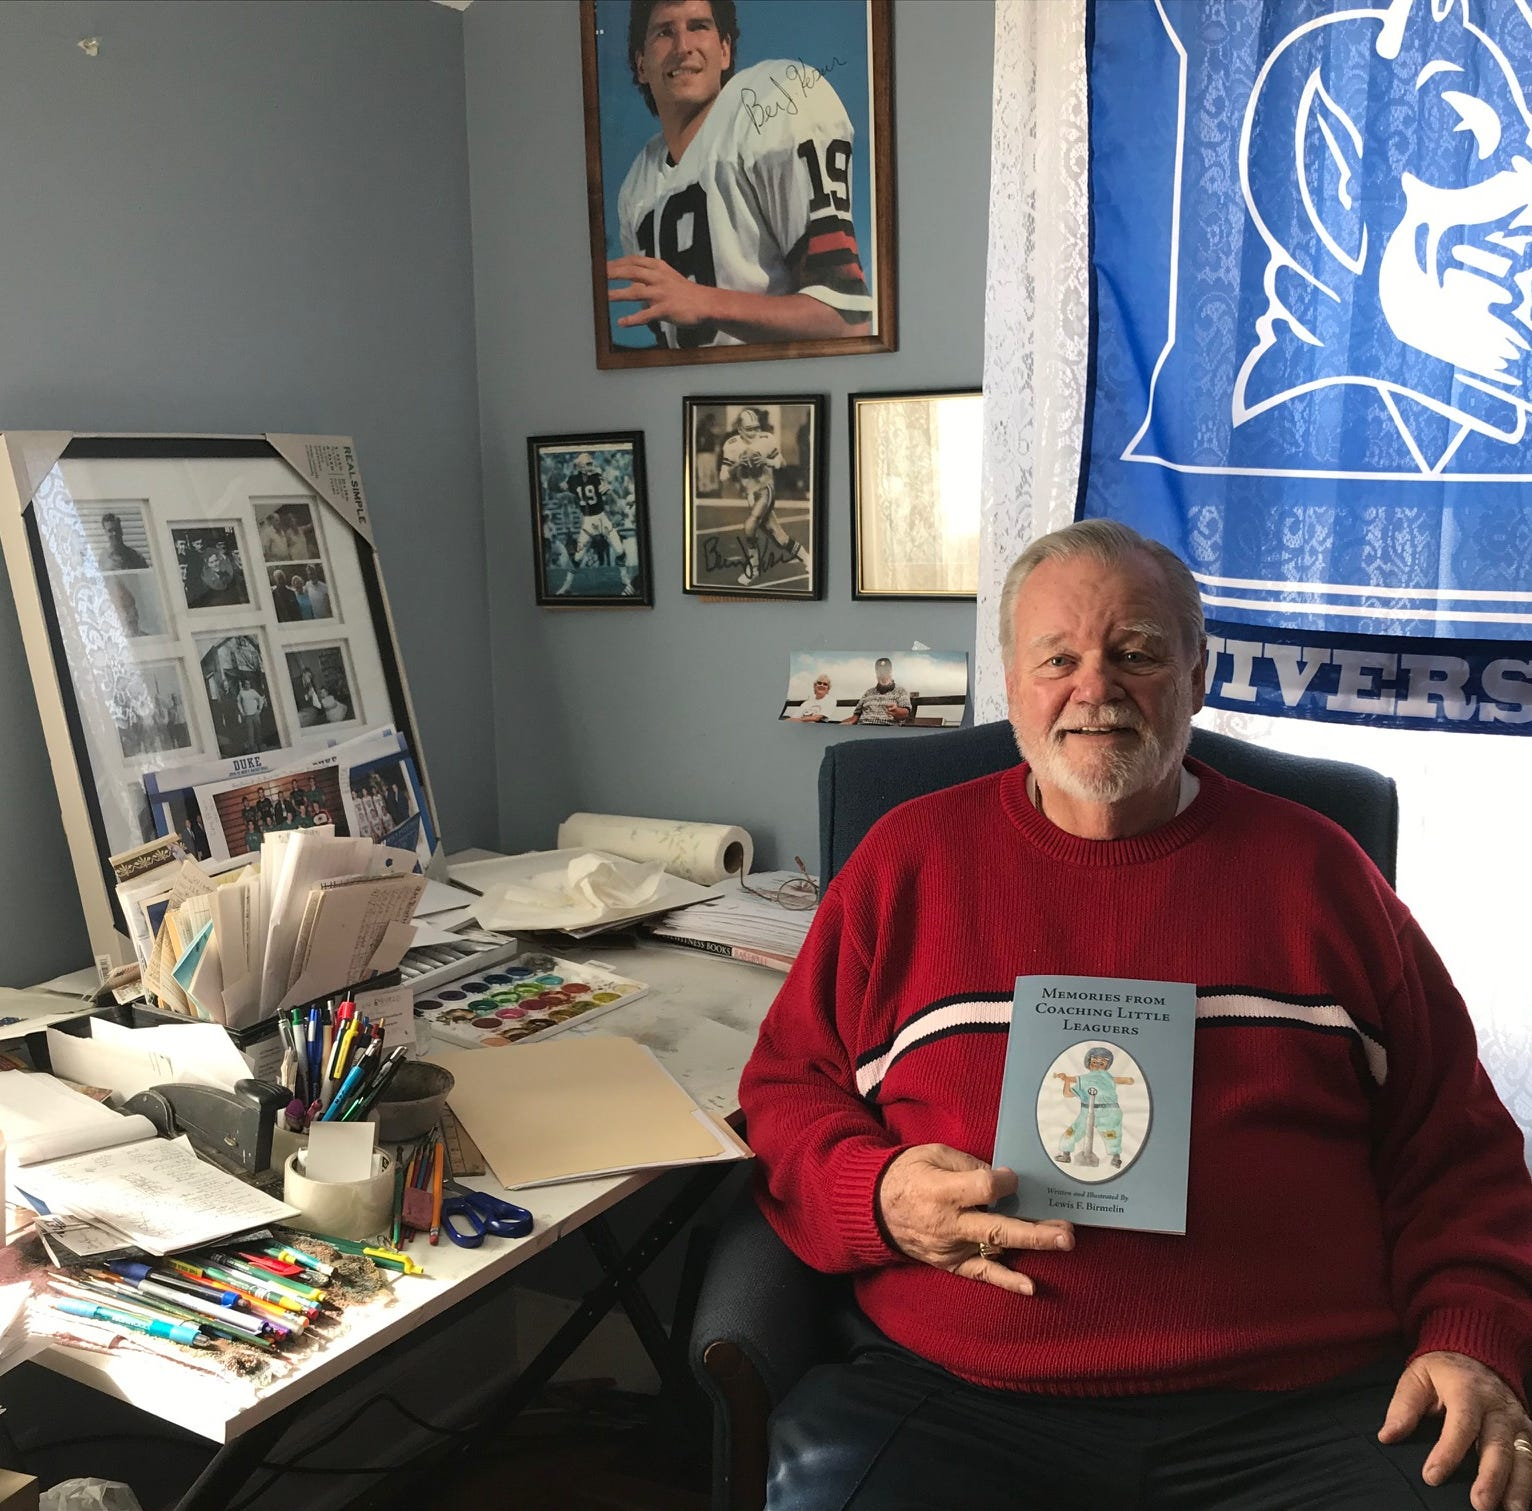 Coaching kids: Little League memories inspire 86-year-old first-time author